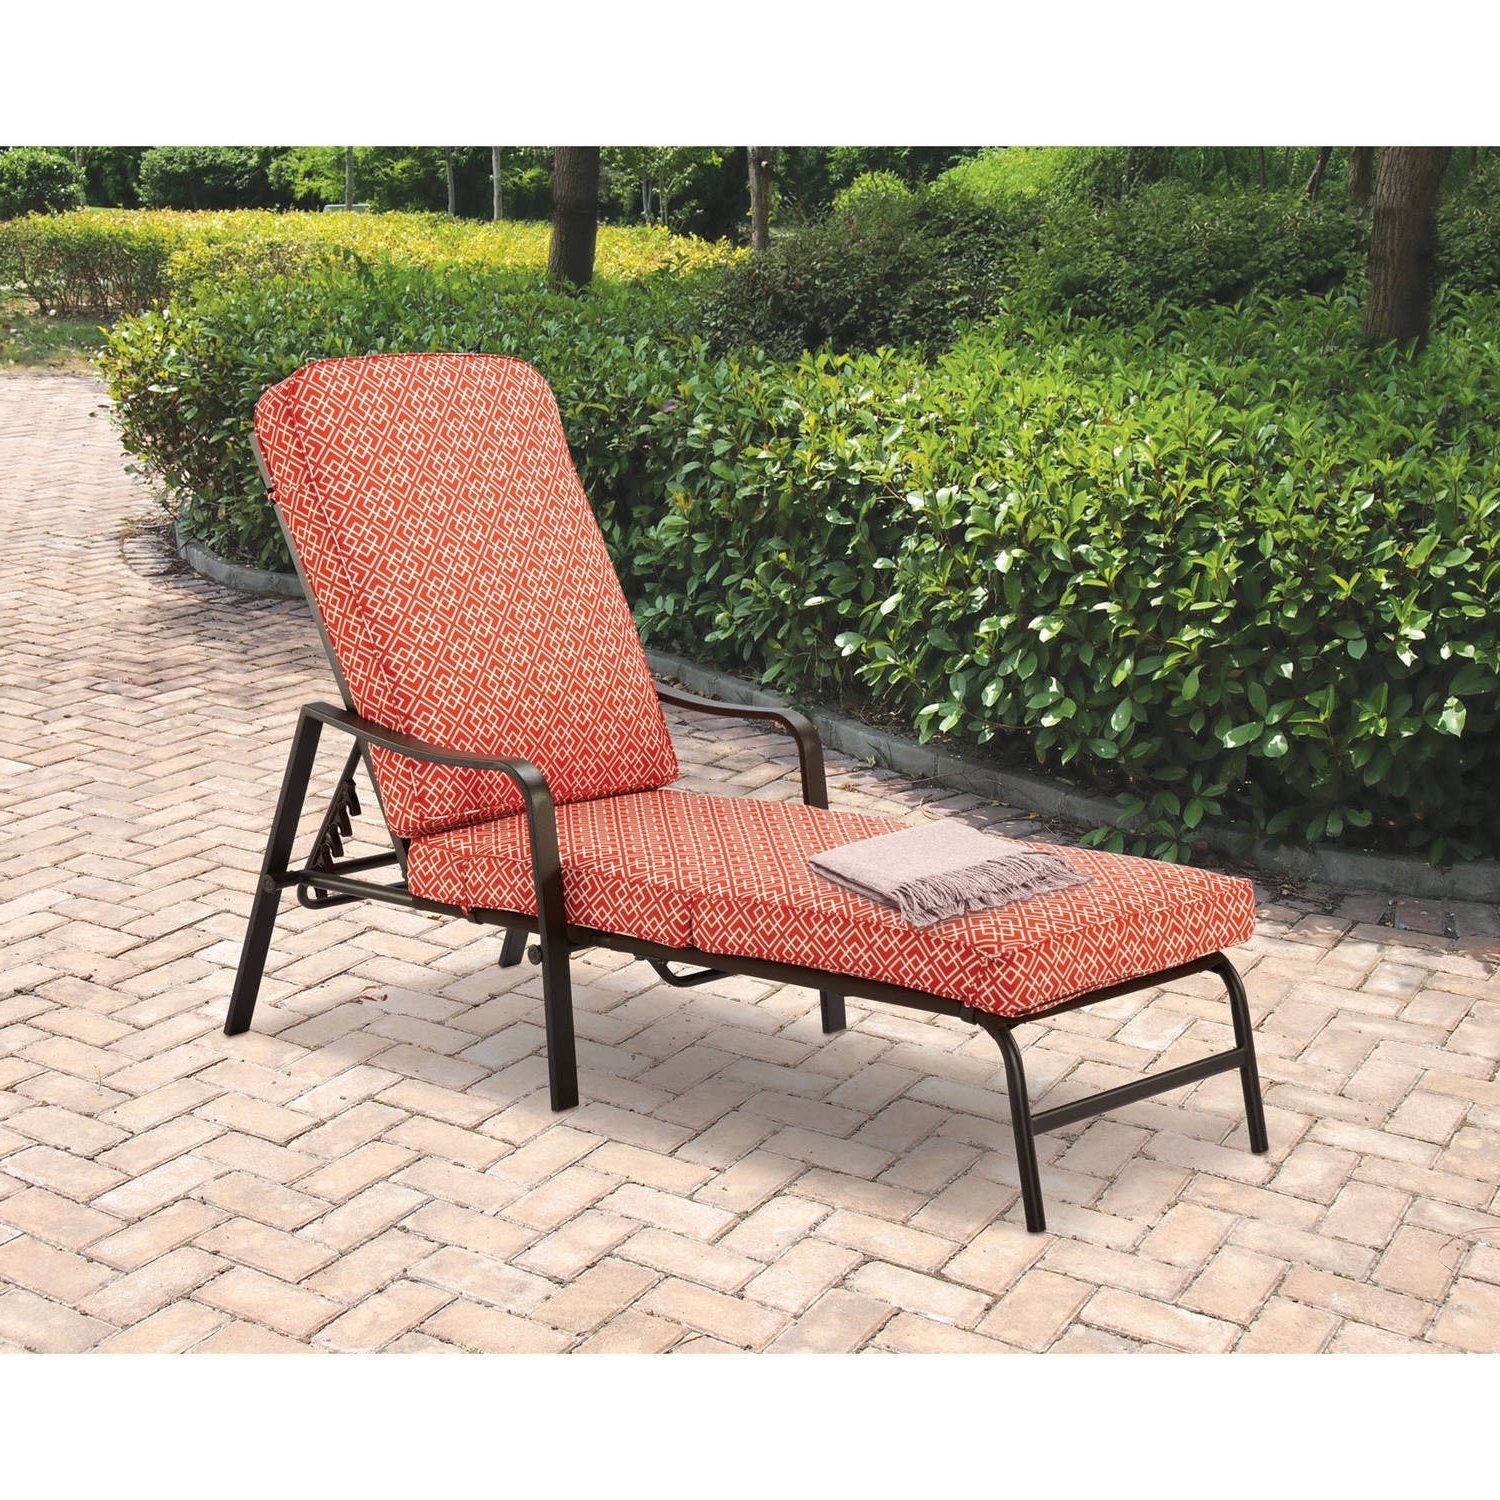 Well Known Walmart Chaise Lounges Intended For Mainstays Outdoor Chaise Lounge, Orange Geo Pattern – Walmart (View 14 of 15)